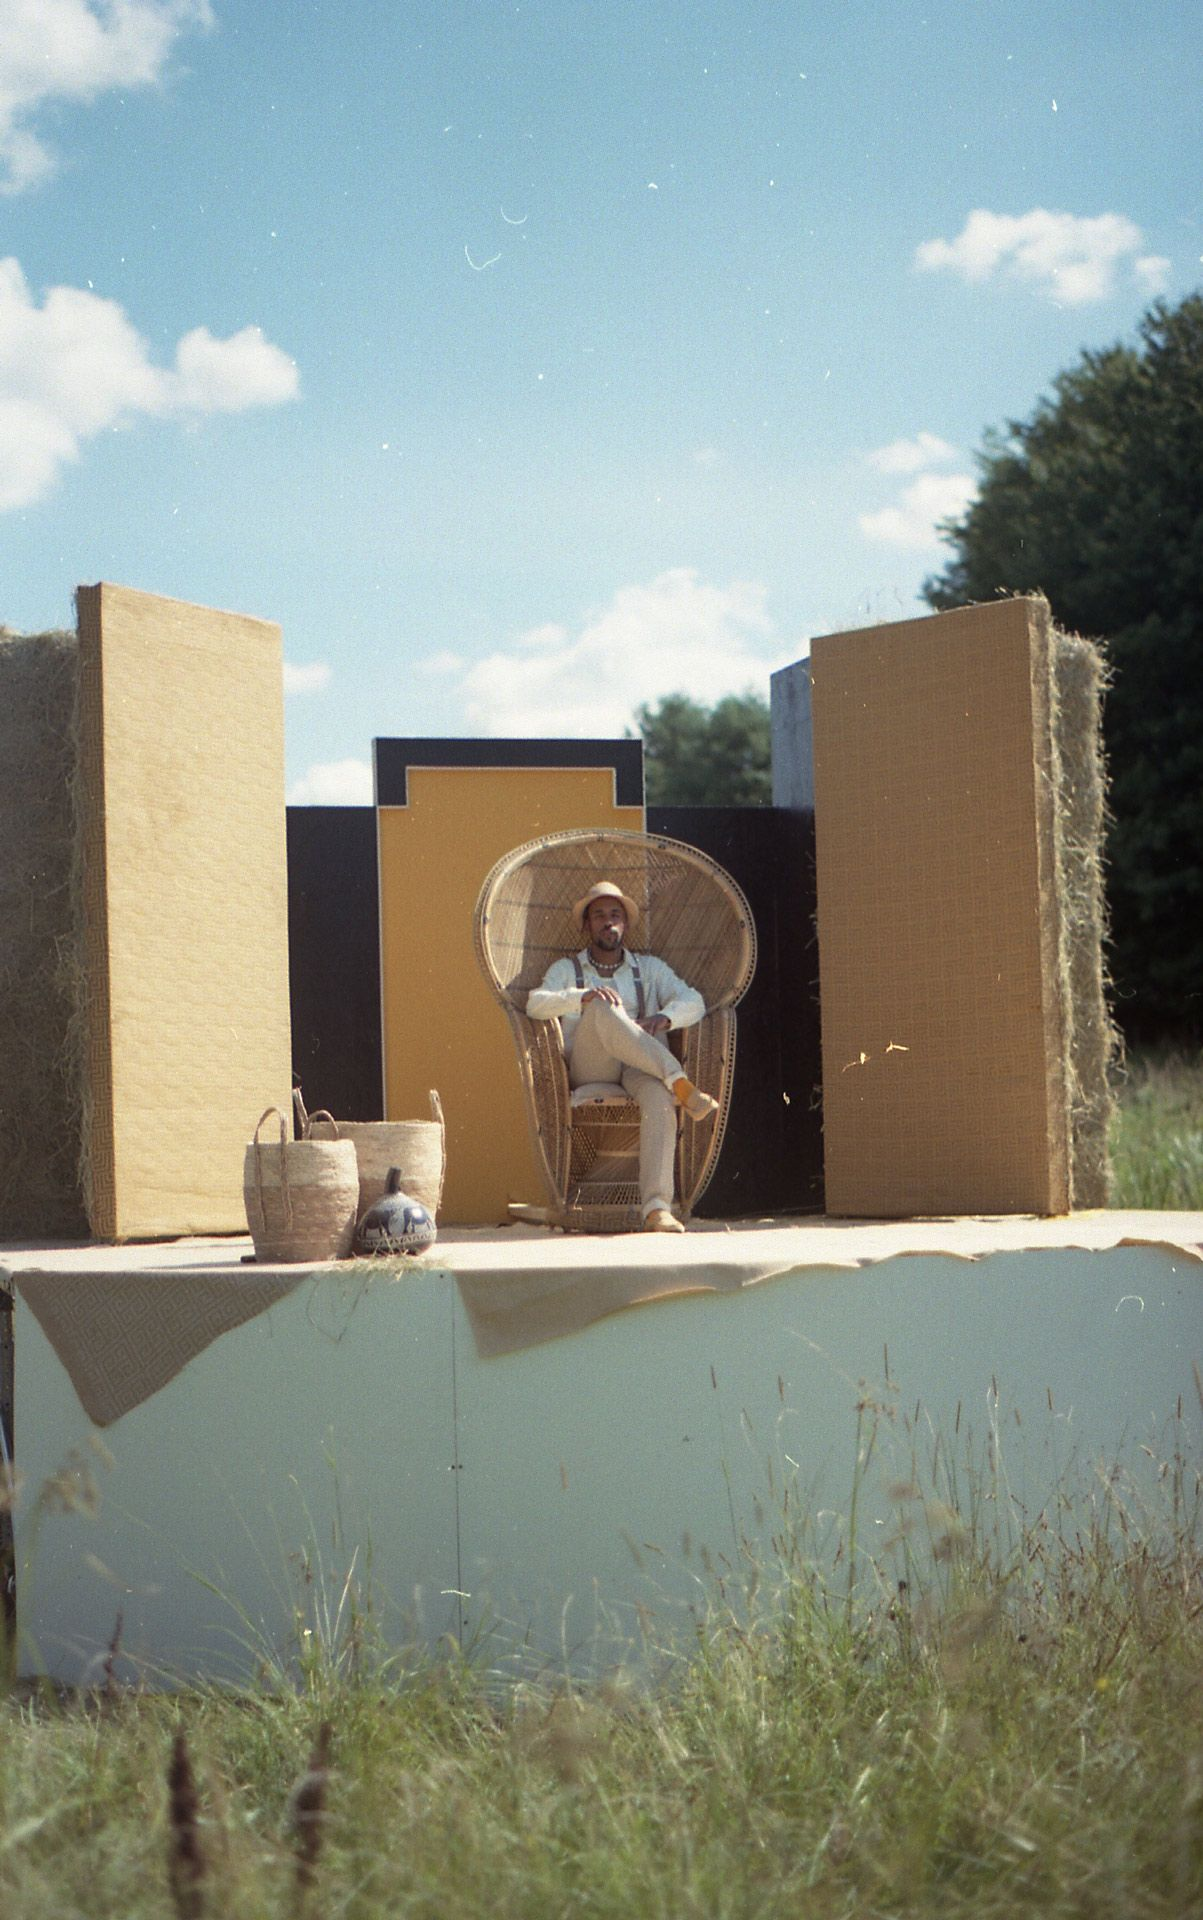 decor and set design in field by Studio TB with singer KNLO sitting on moving rattan throne in his music video Plafond